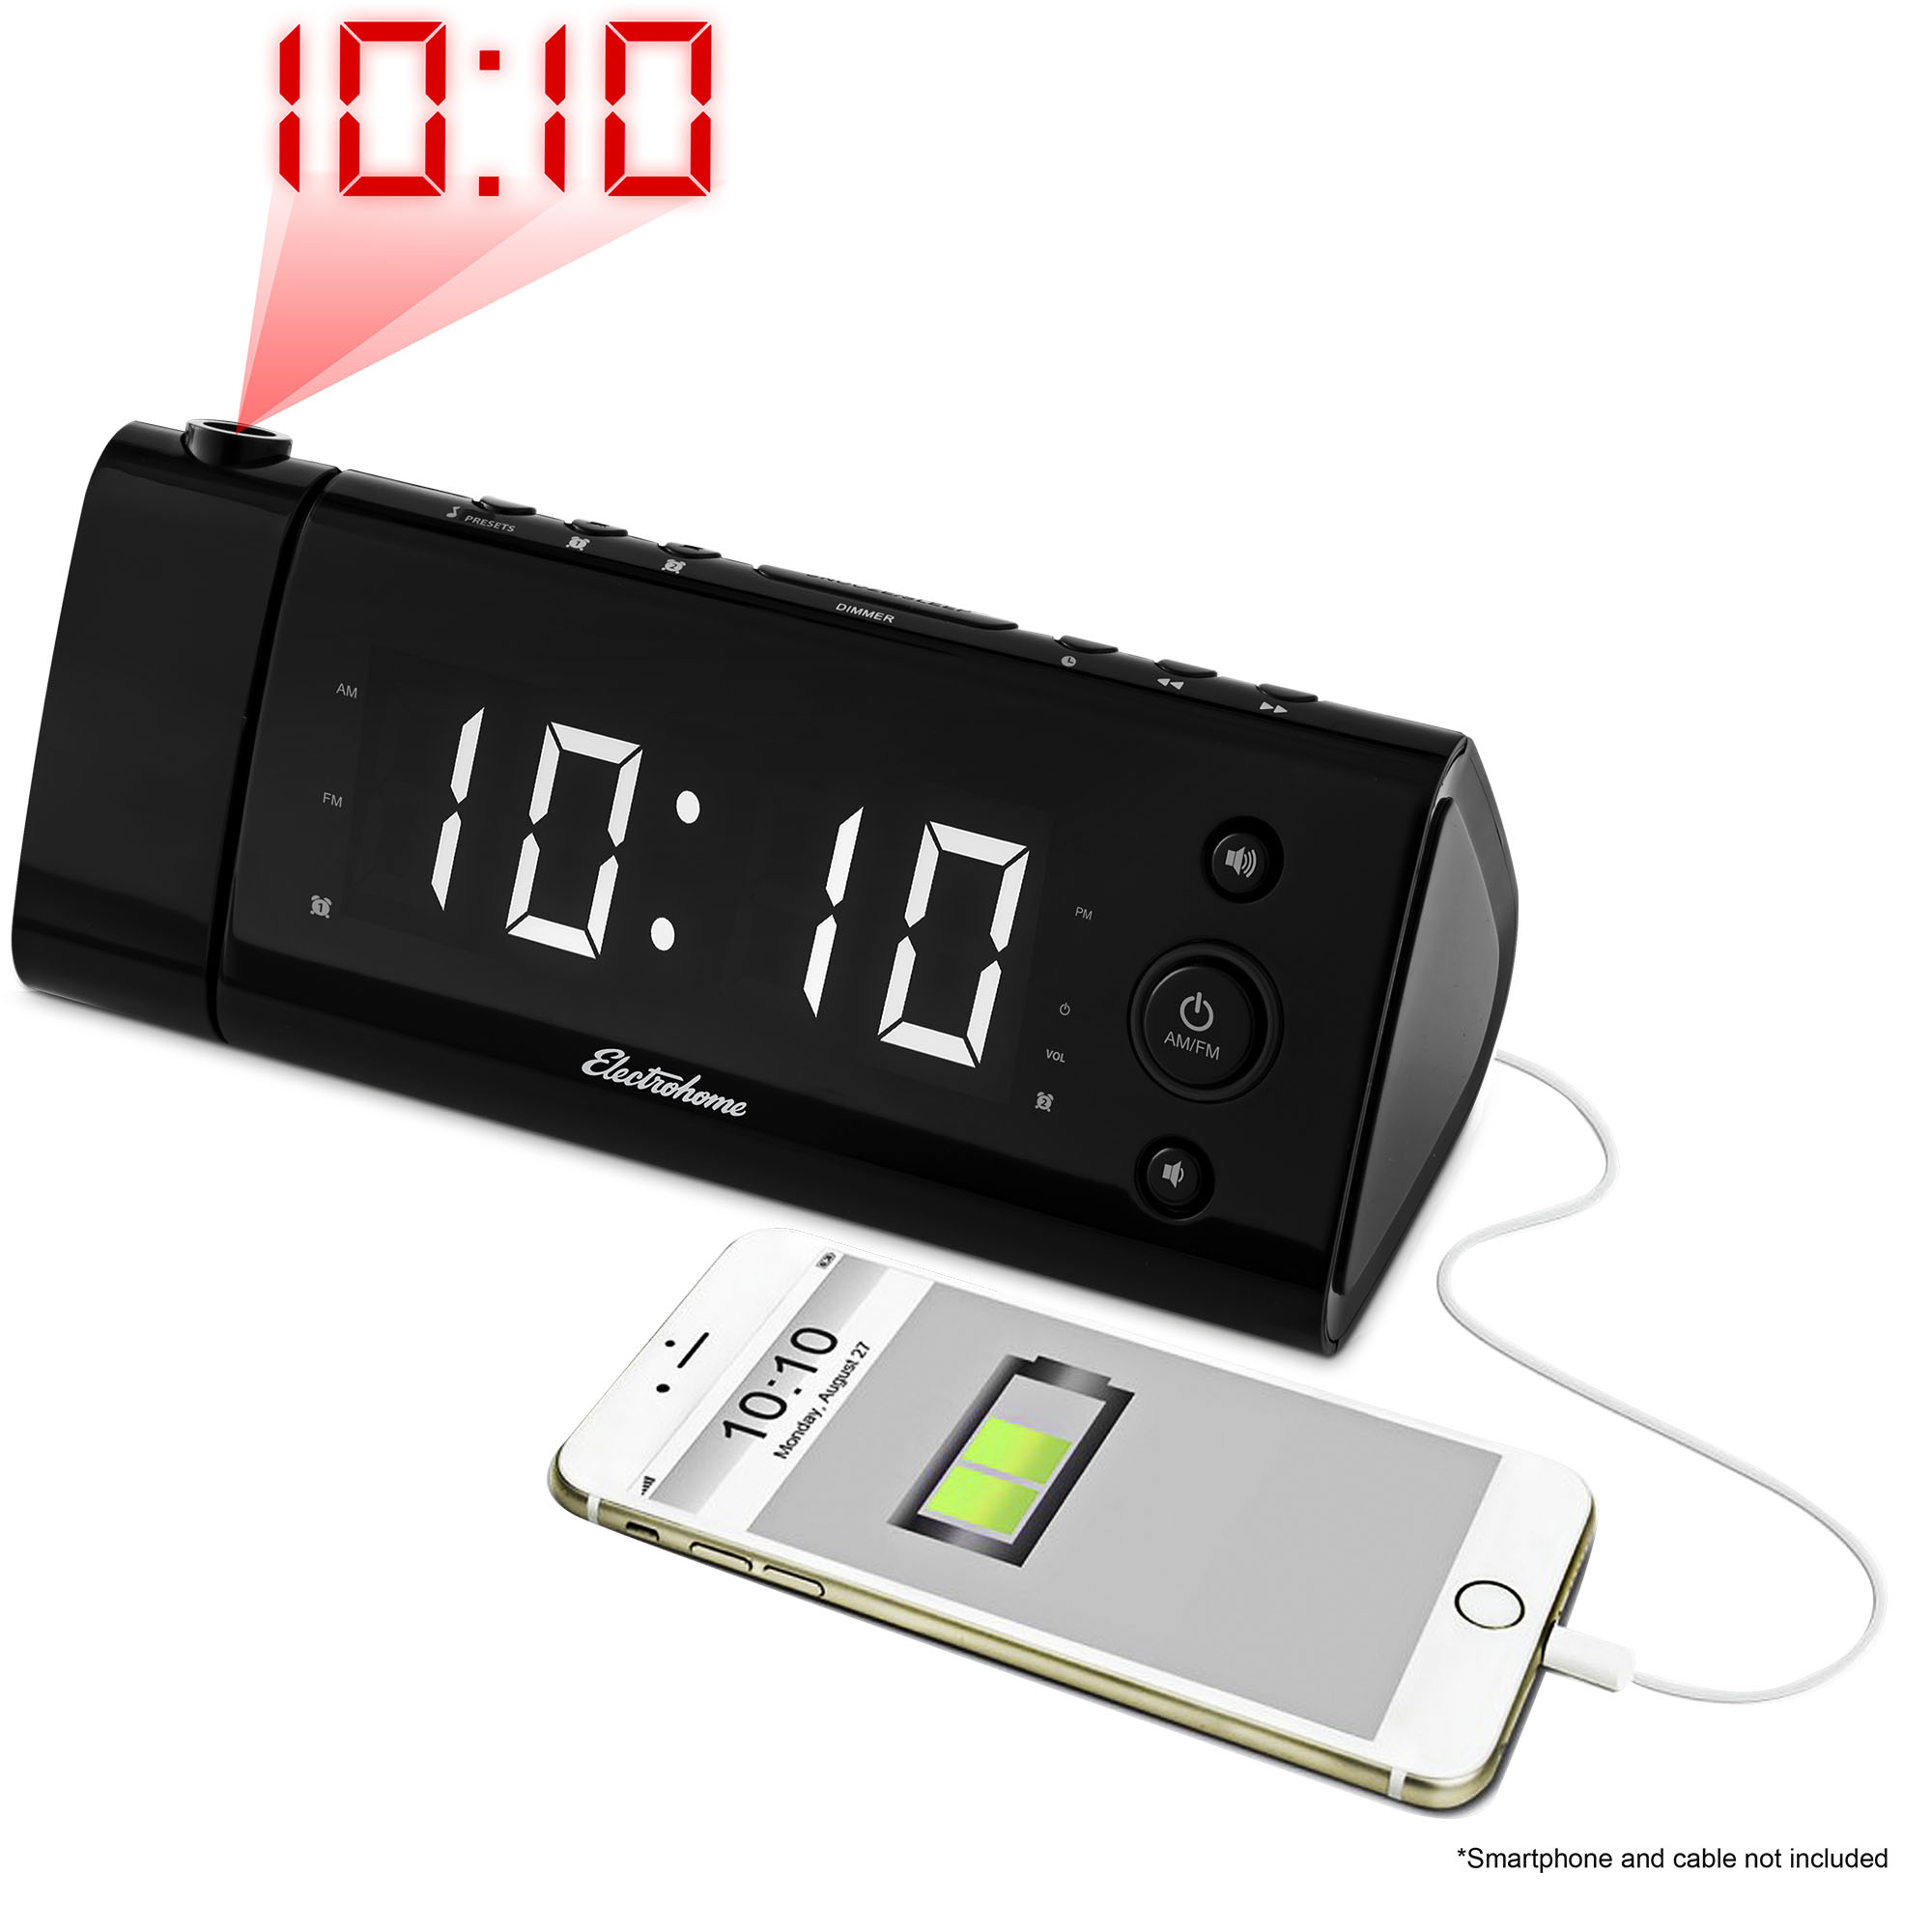 "Electrohome USB Charging Alarm Clock Radio with Time Projection, Battery Backup, Auto Time Set, Dual Alarm, 1.2"" LED Display for Smartphones & Tablets (EAAC475W)…"